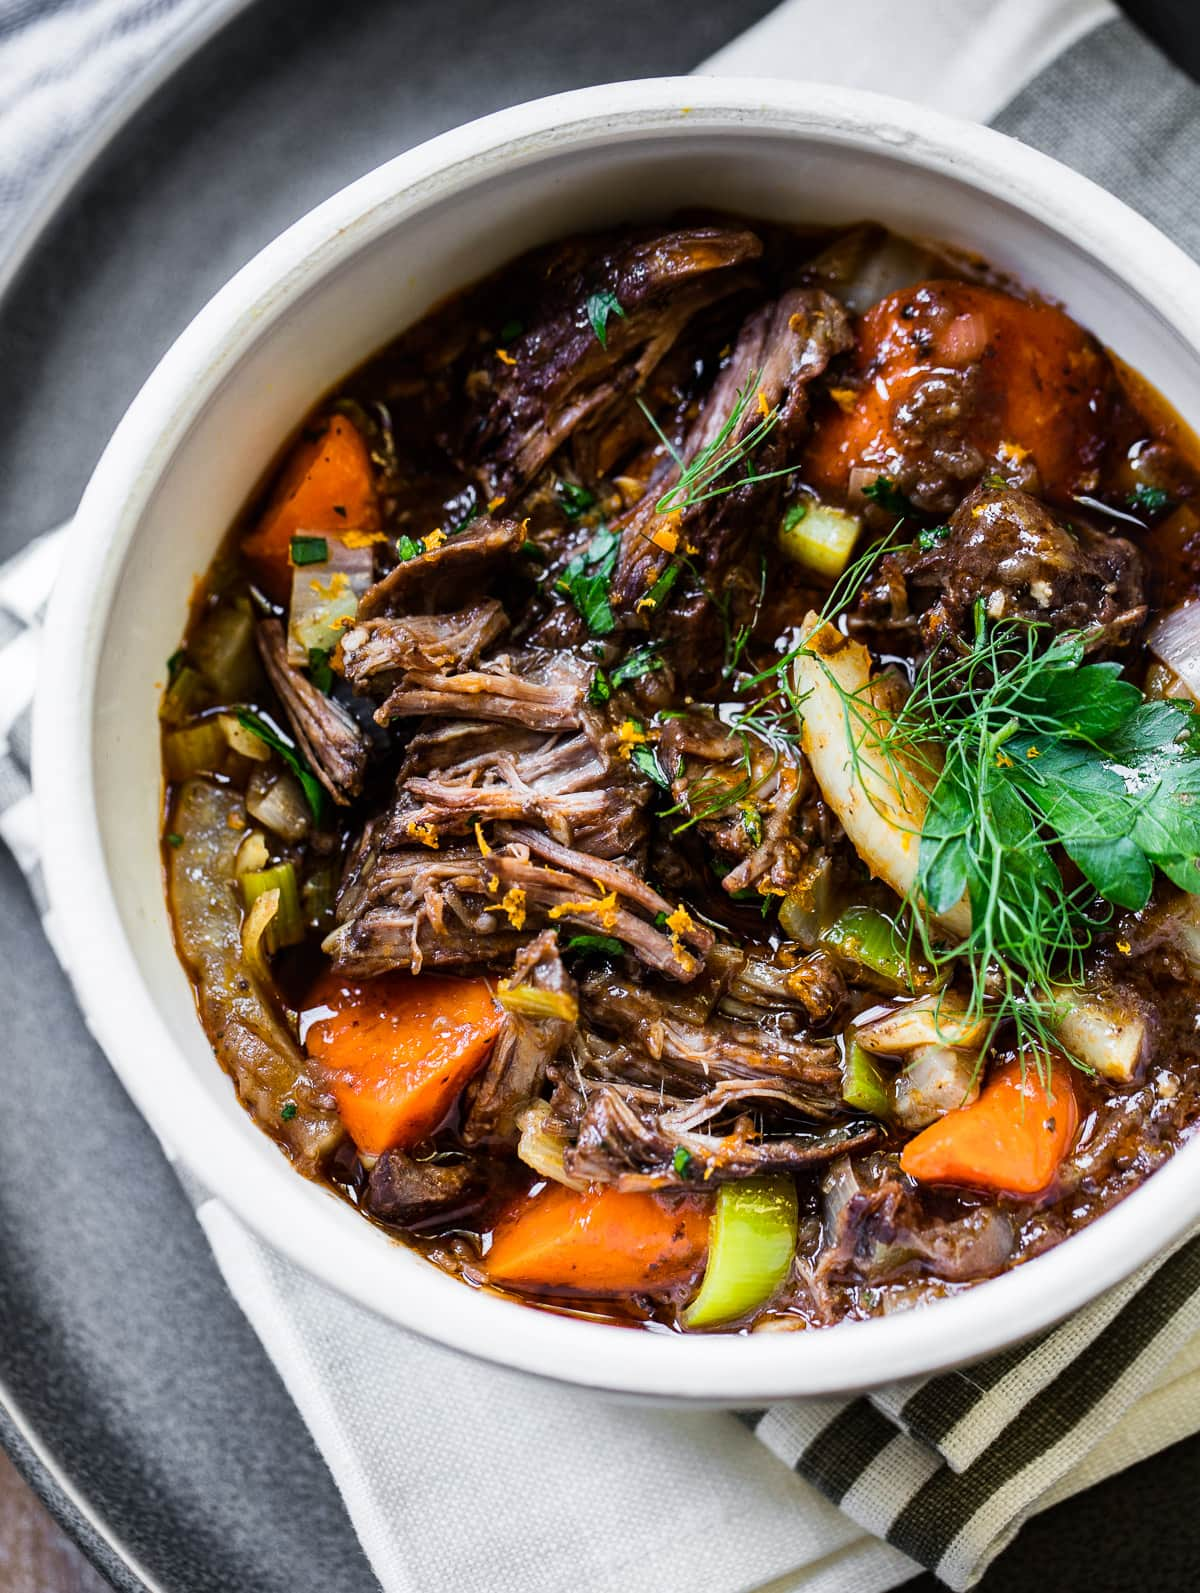 Slow Cooked French Beef Stew With Red Wine Familystyle Food